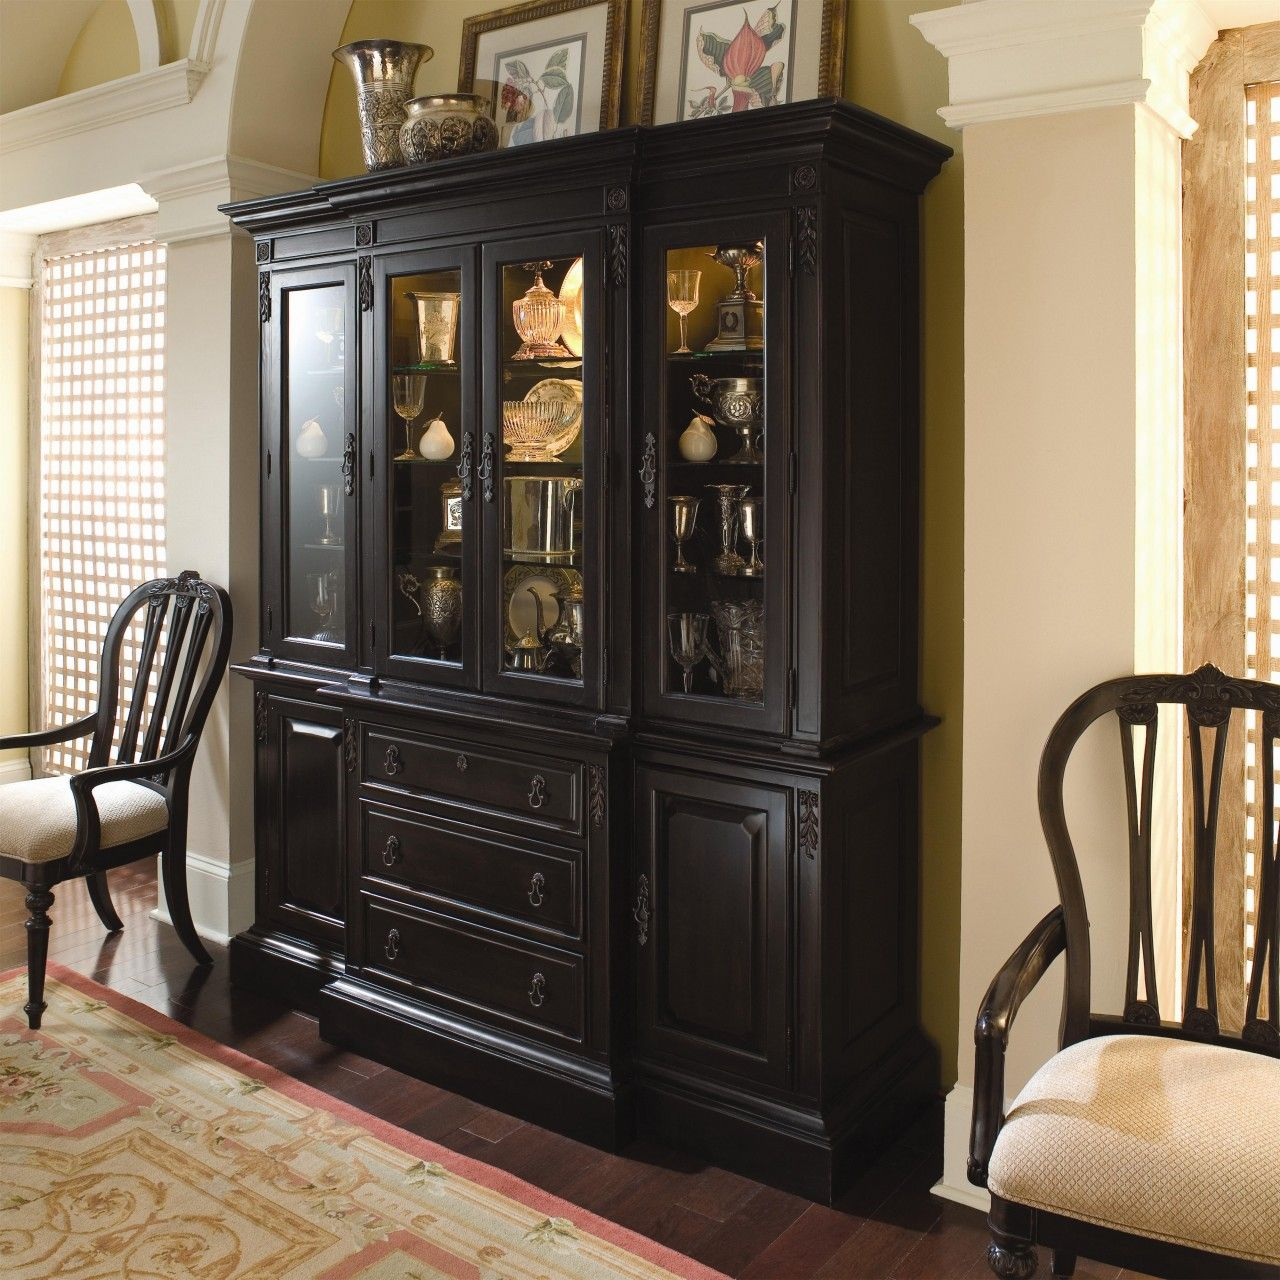 Dining Room Hutch Design Ideas Interior China Cabinet Design Ideas For A  Diningroom With Black Color Complete With Glass Ornaments Inside Complete  With Some ...